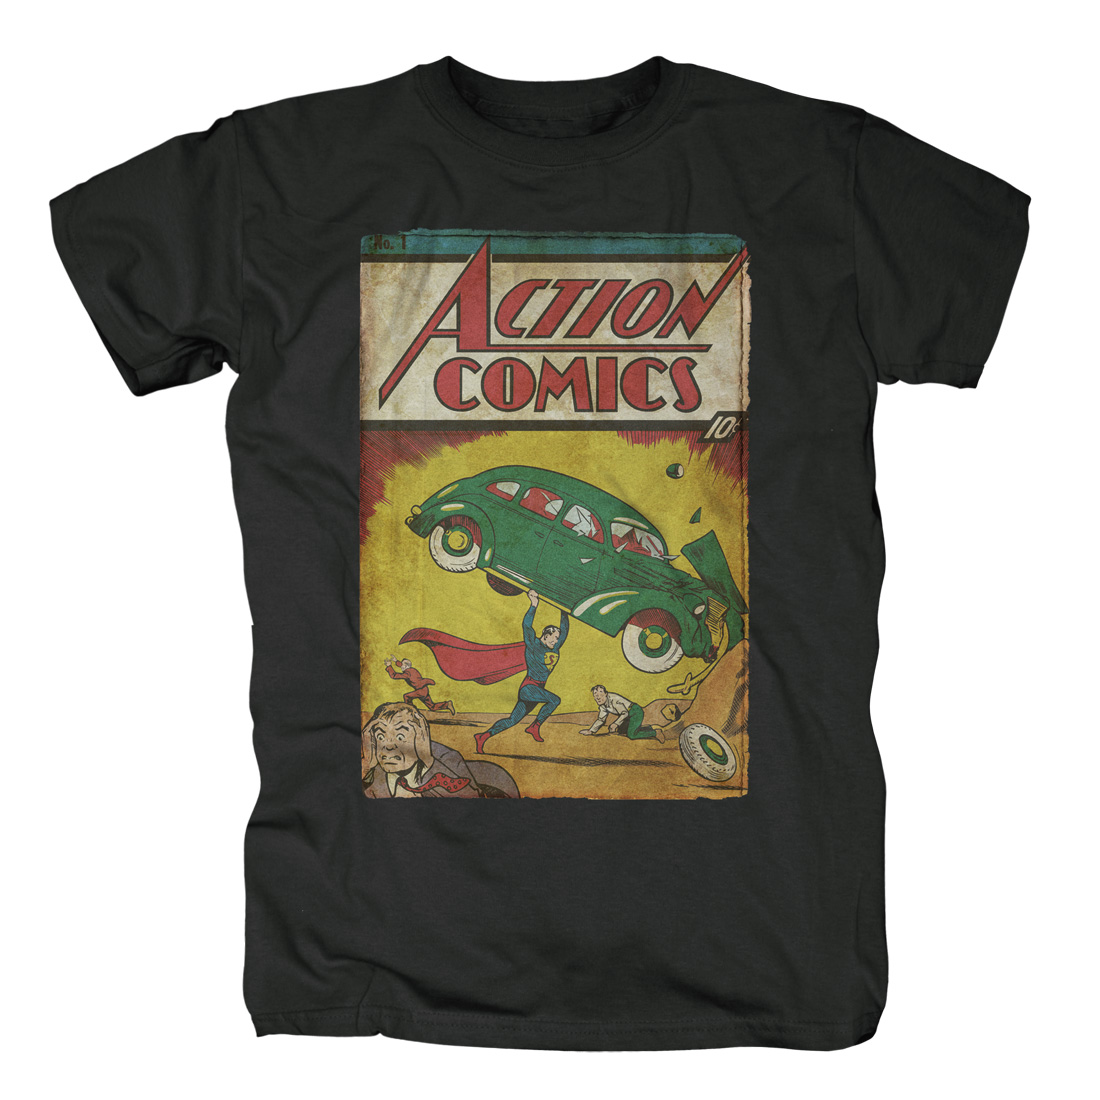 Action Comics No.1 von Justice League - T-Shirt jetzt im SuperTees Shop